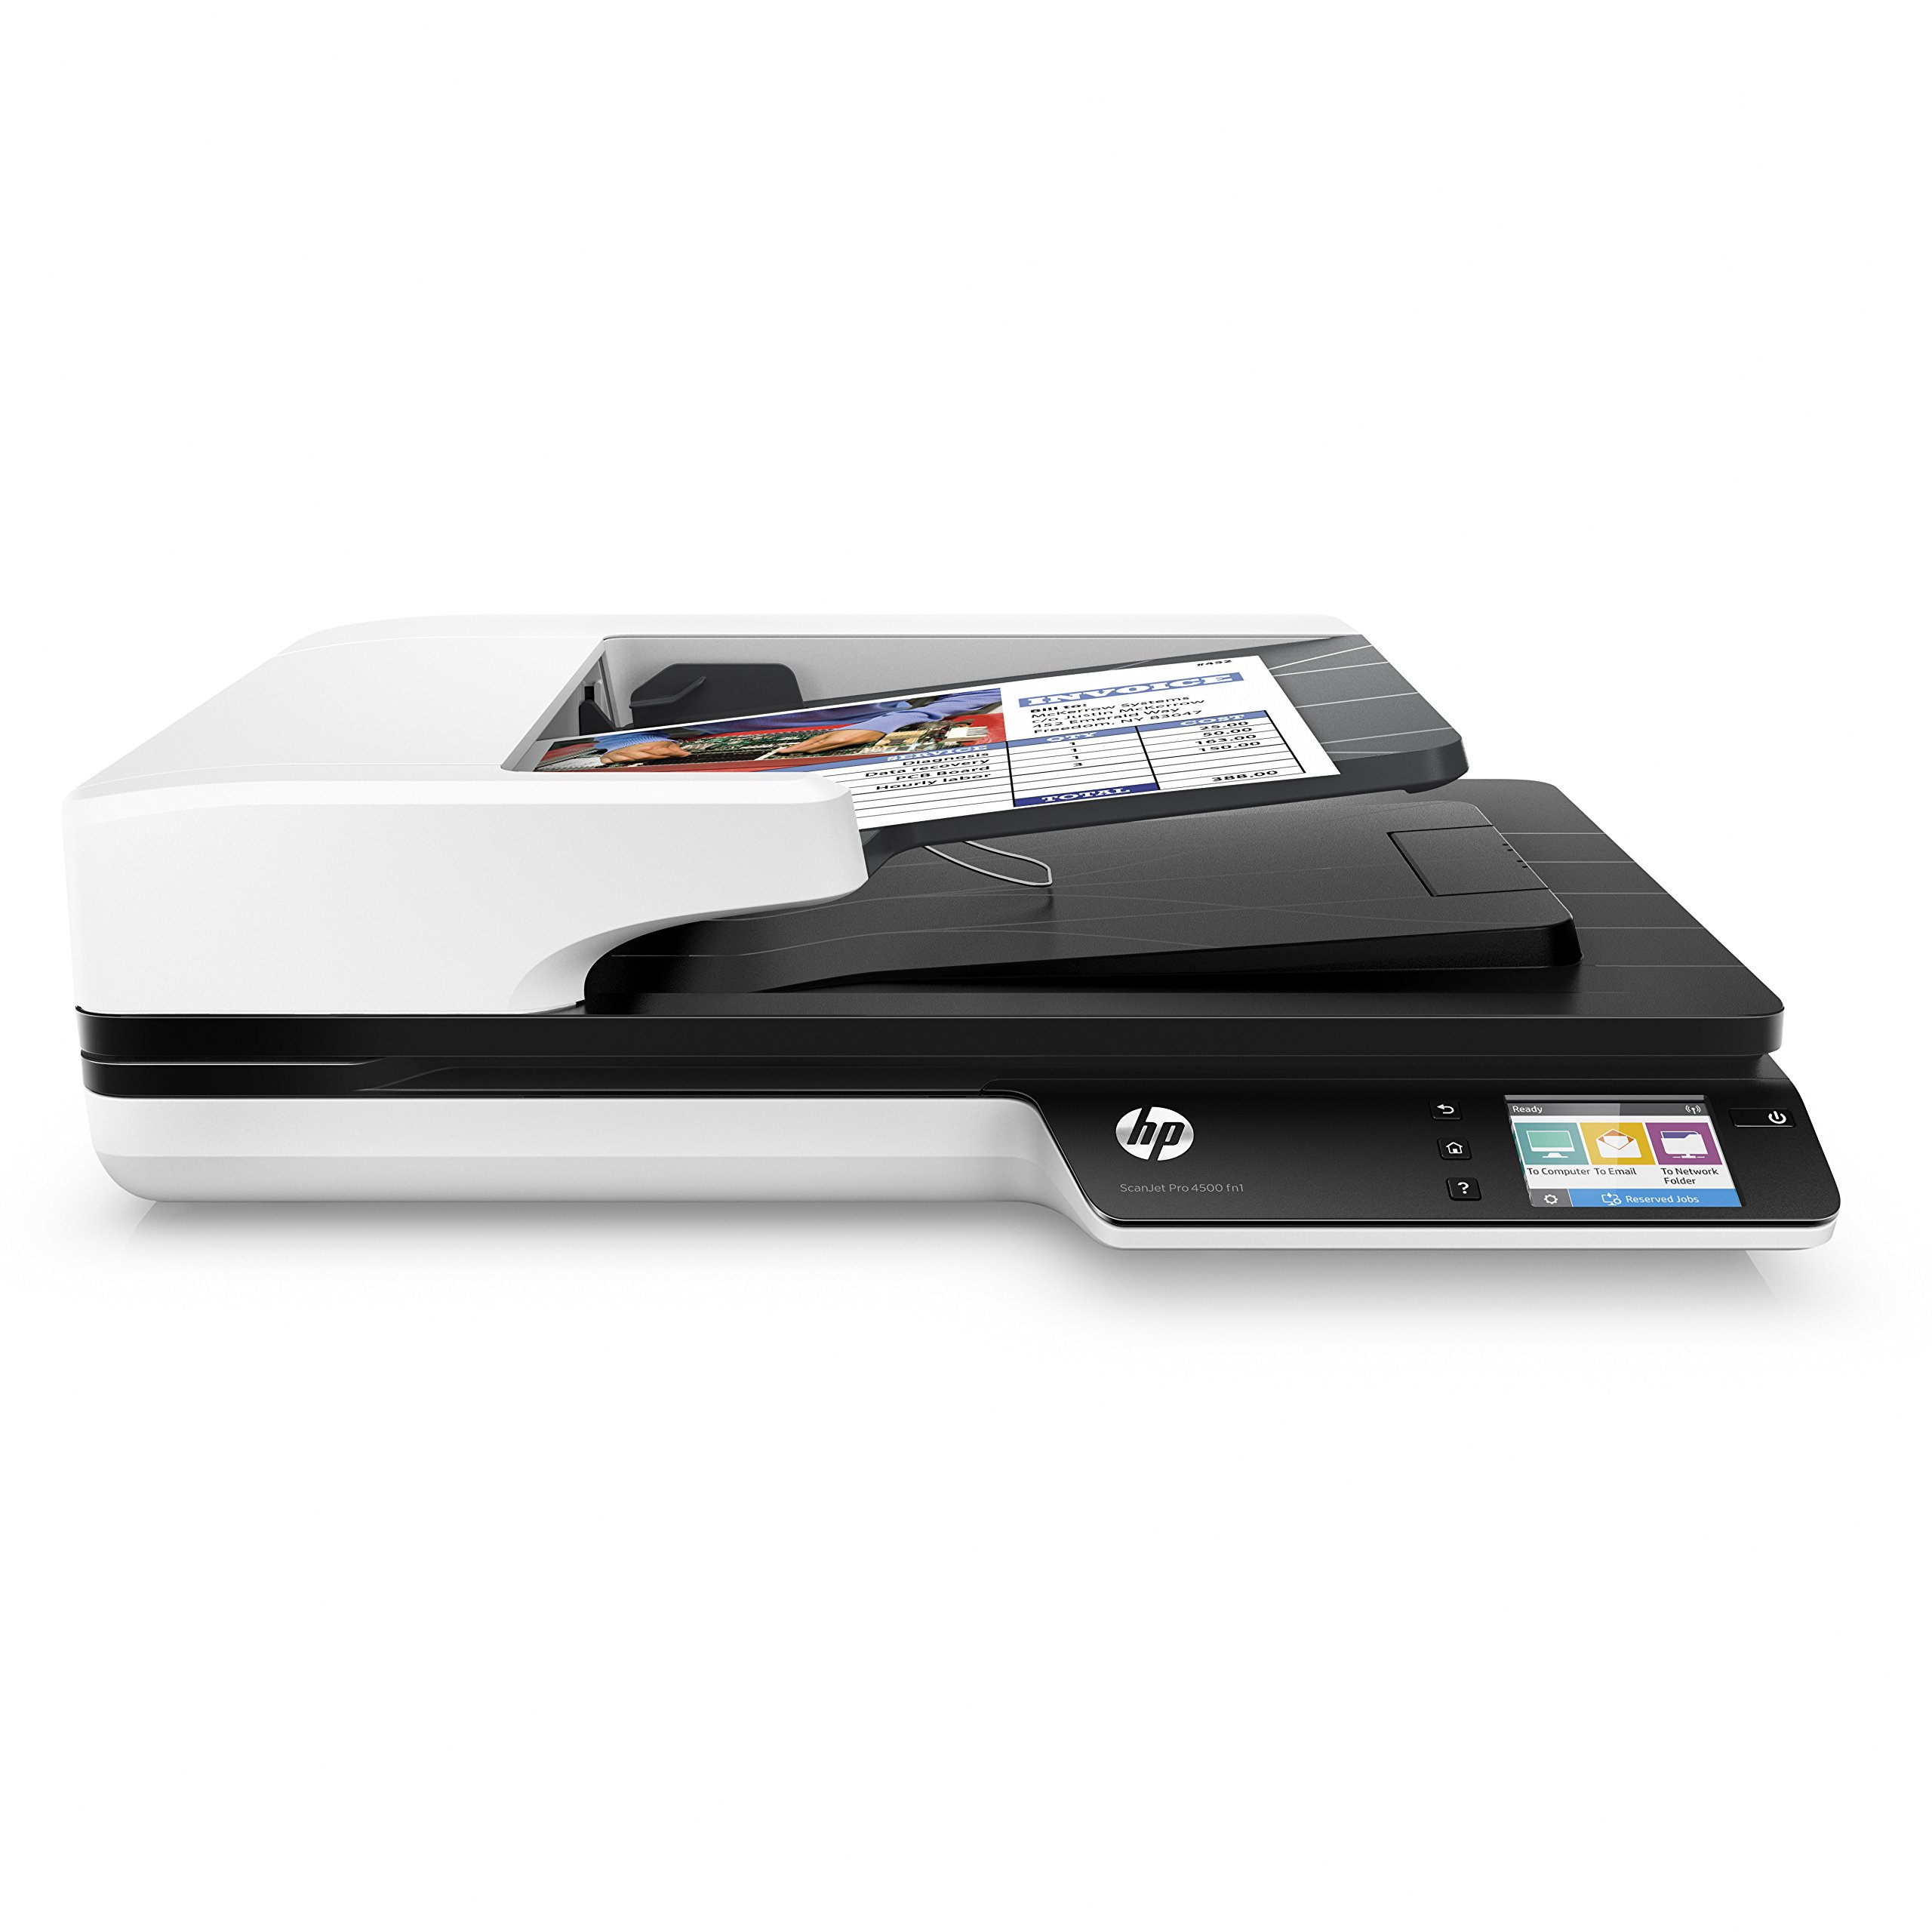 HP ScanJet Pro 4500 fn1 Network OCR Scanner by HP